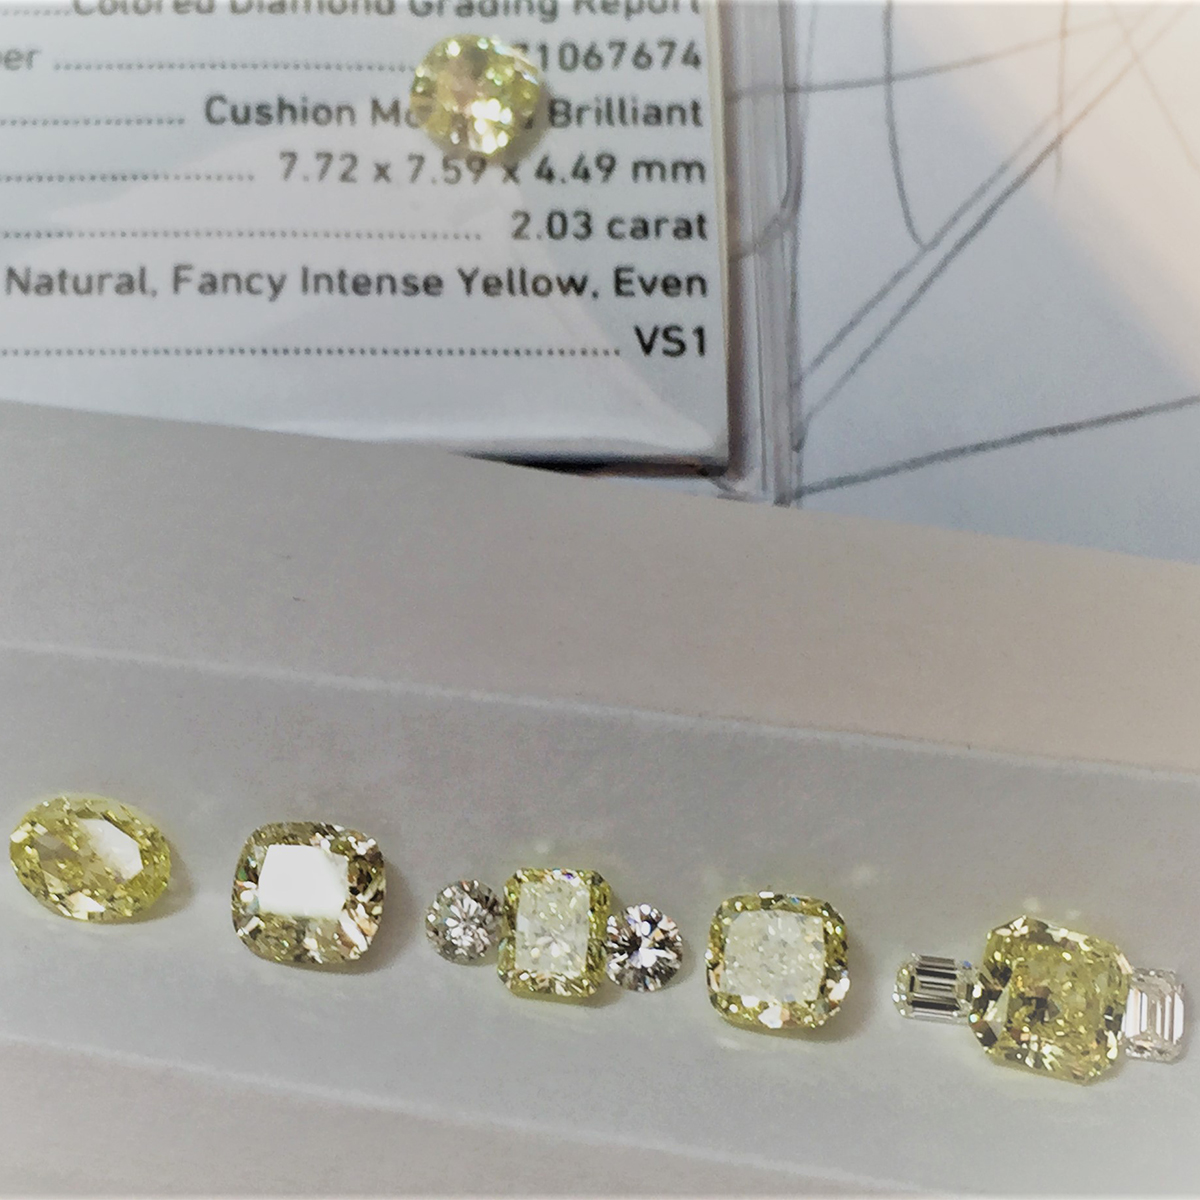 https://milldiamonds.com/wp-content/uploads/2020/05/1200x1200px-yellow-diamonds1.-jpg.jpg